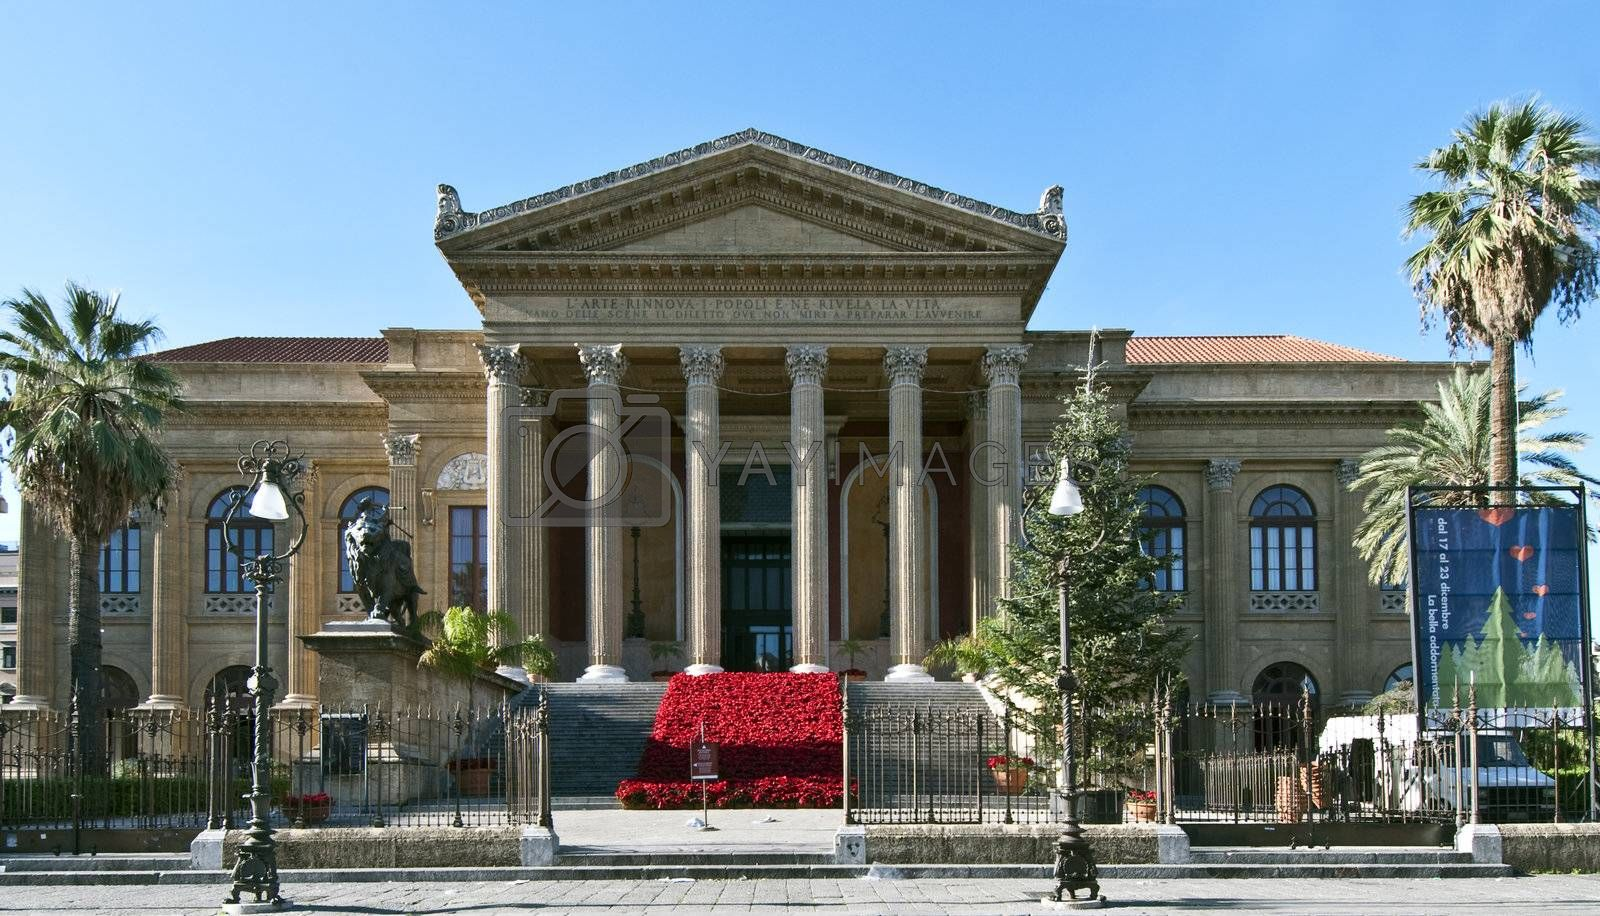 Teatro Massimo in Palermo during the Christmas